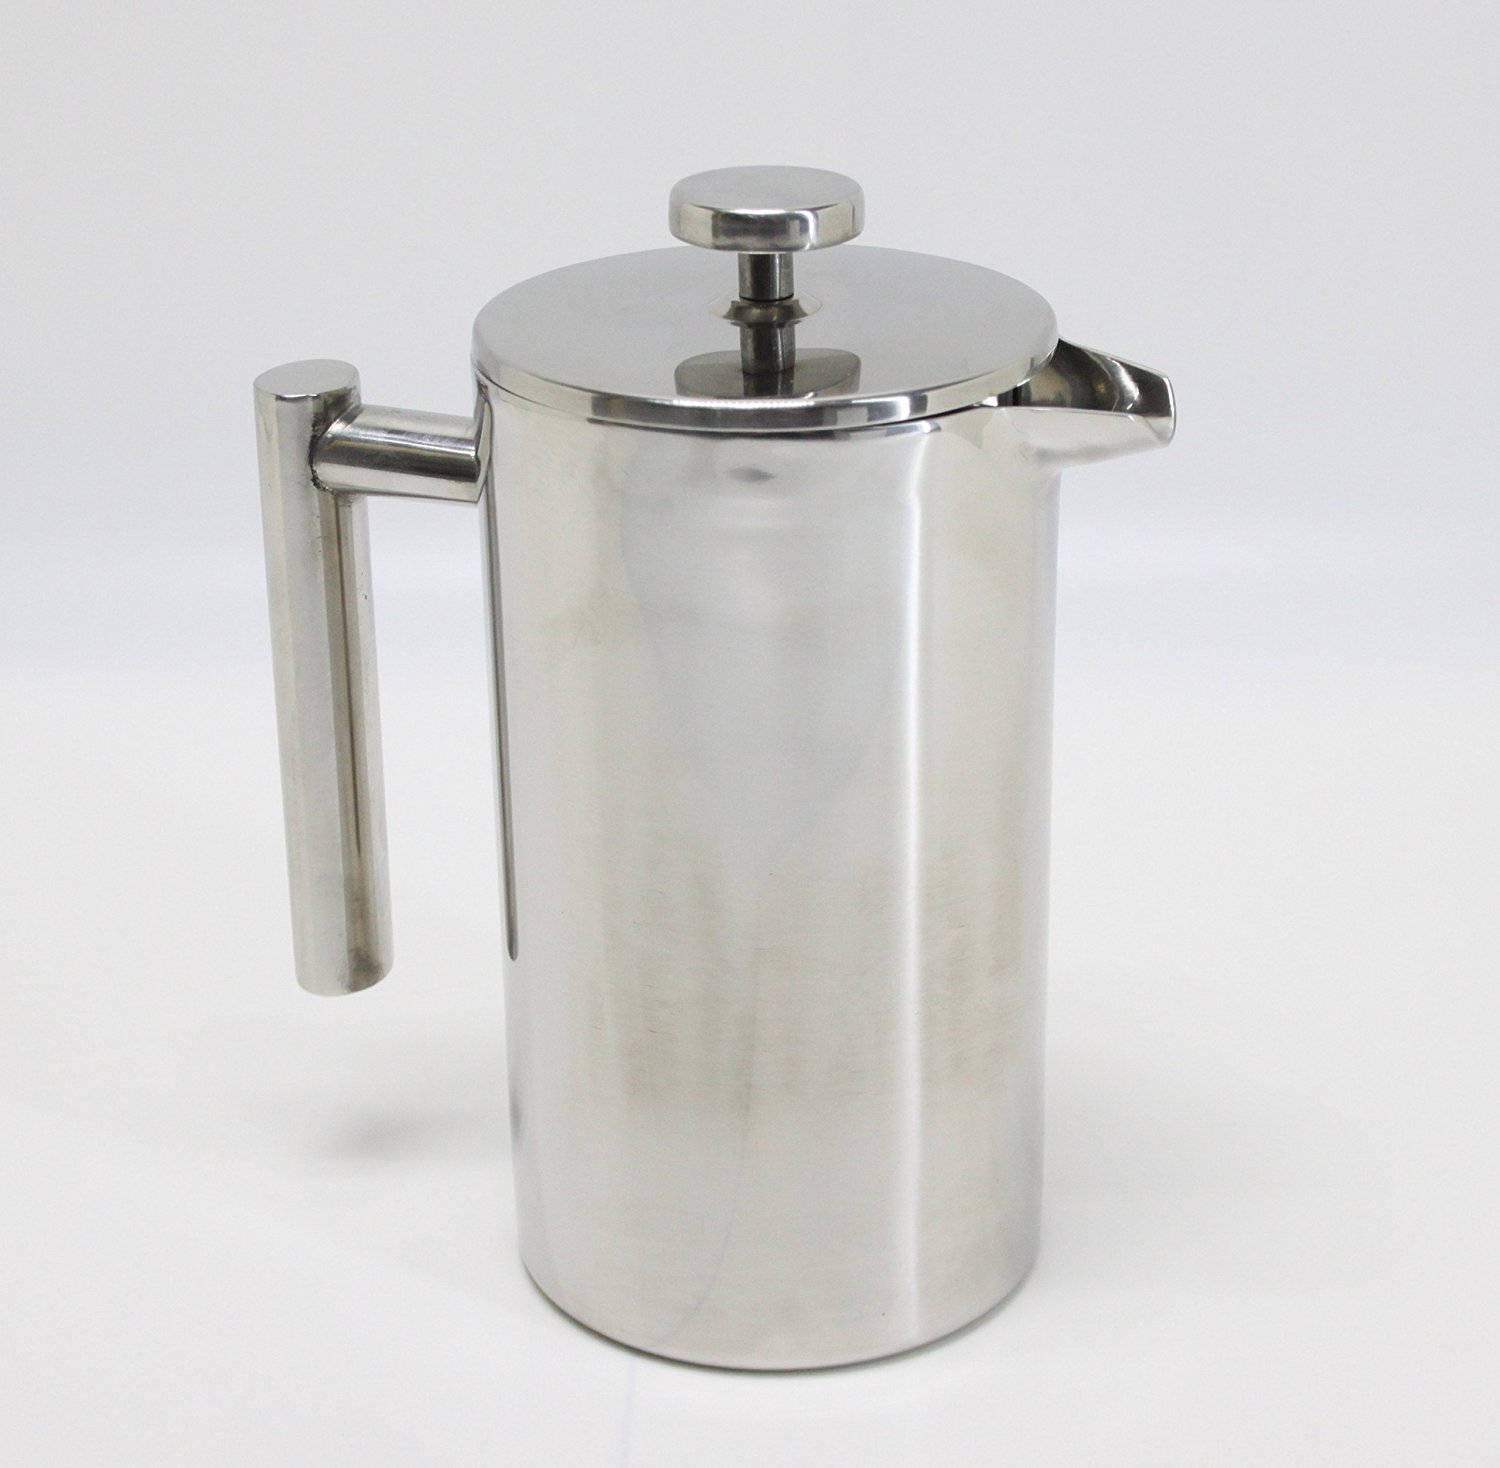 FixtureDisplays Double-Wall Stainless Steel French Coffee Press, 34 oz / 1 Liter 16030